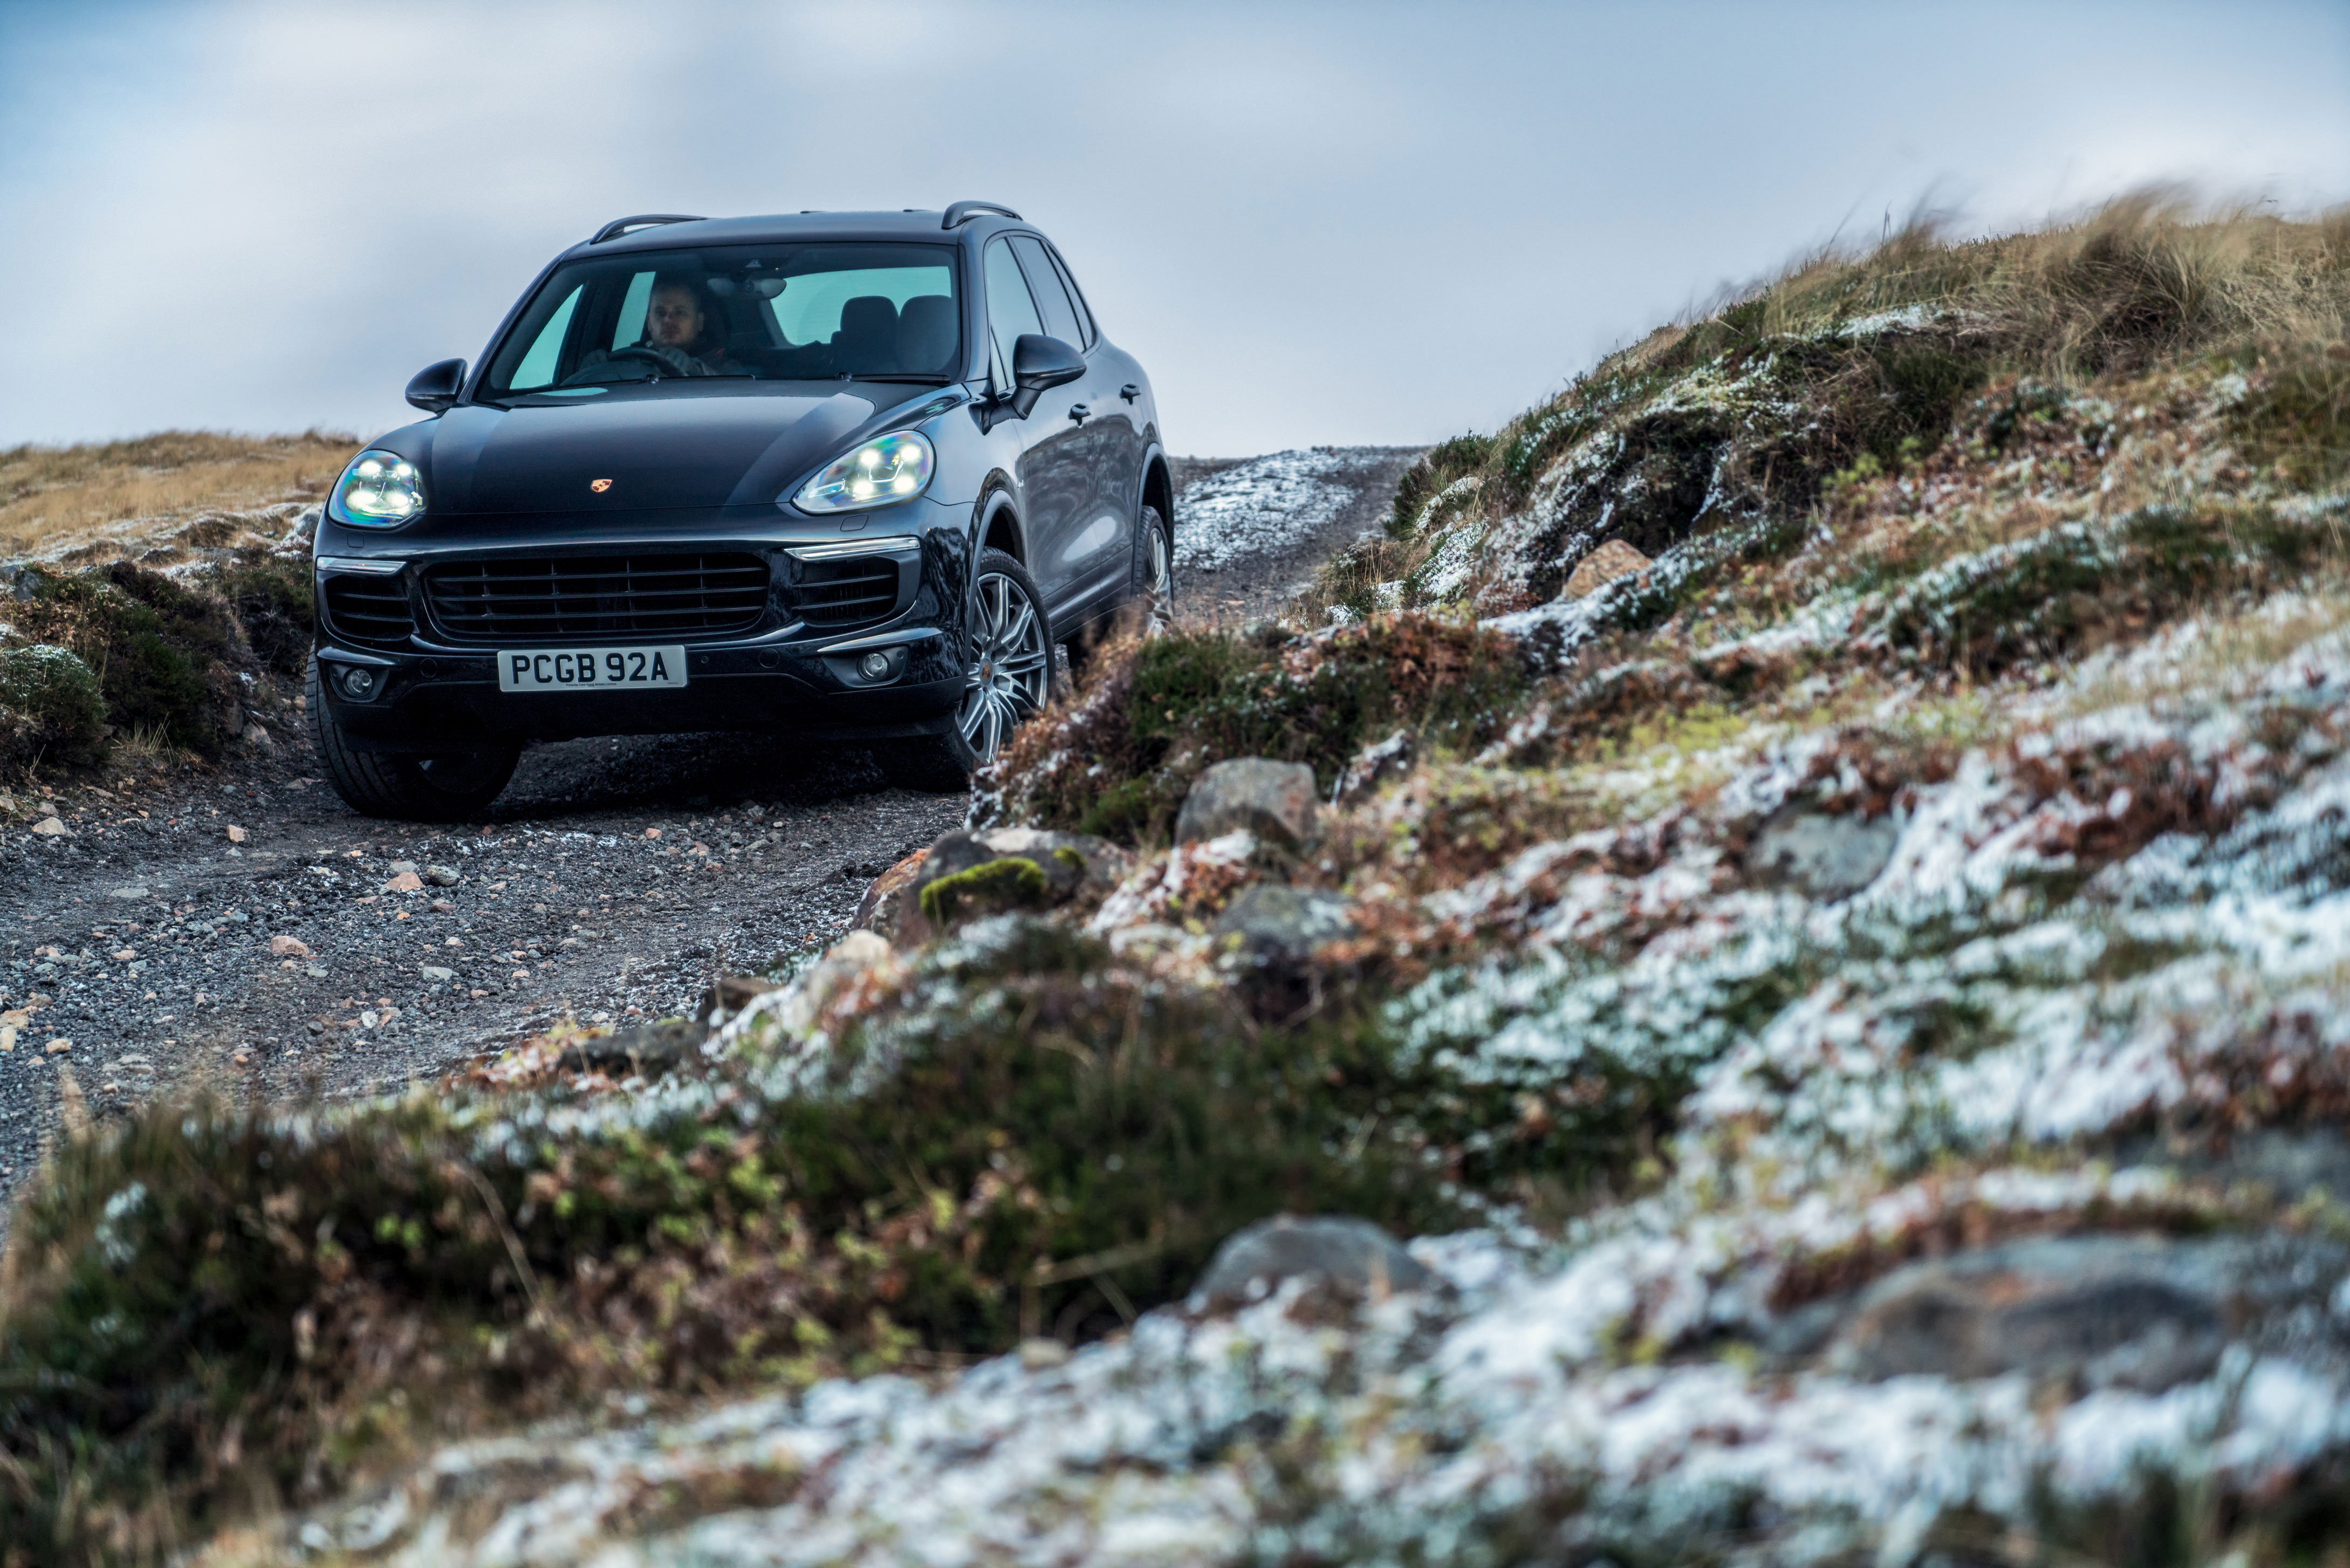 Porsche Cayenne review - Remarkably capable, the Cayenne is